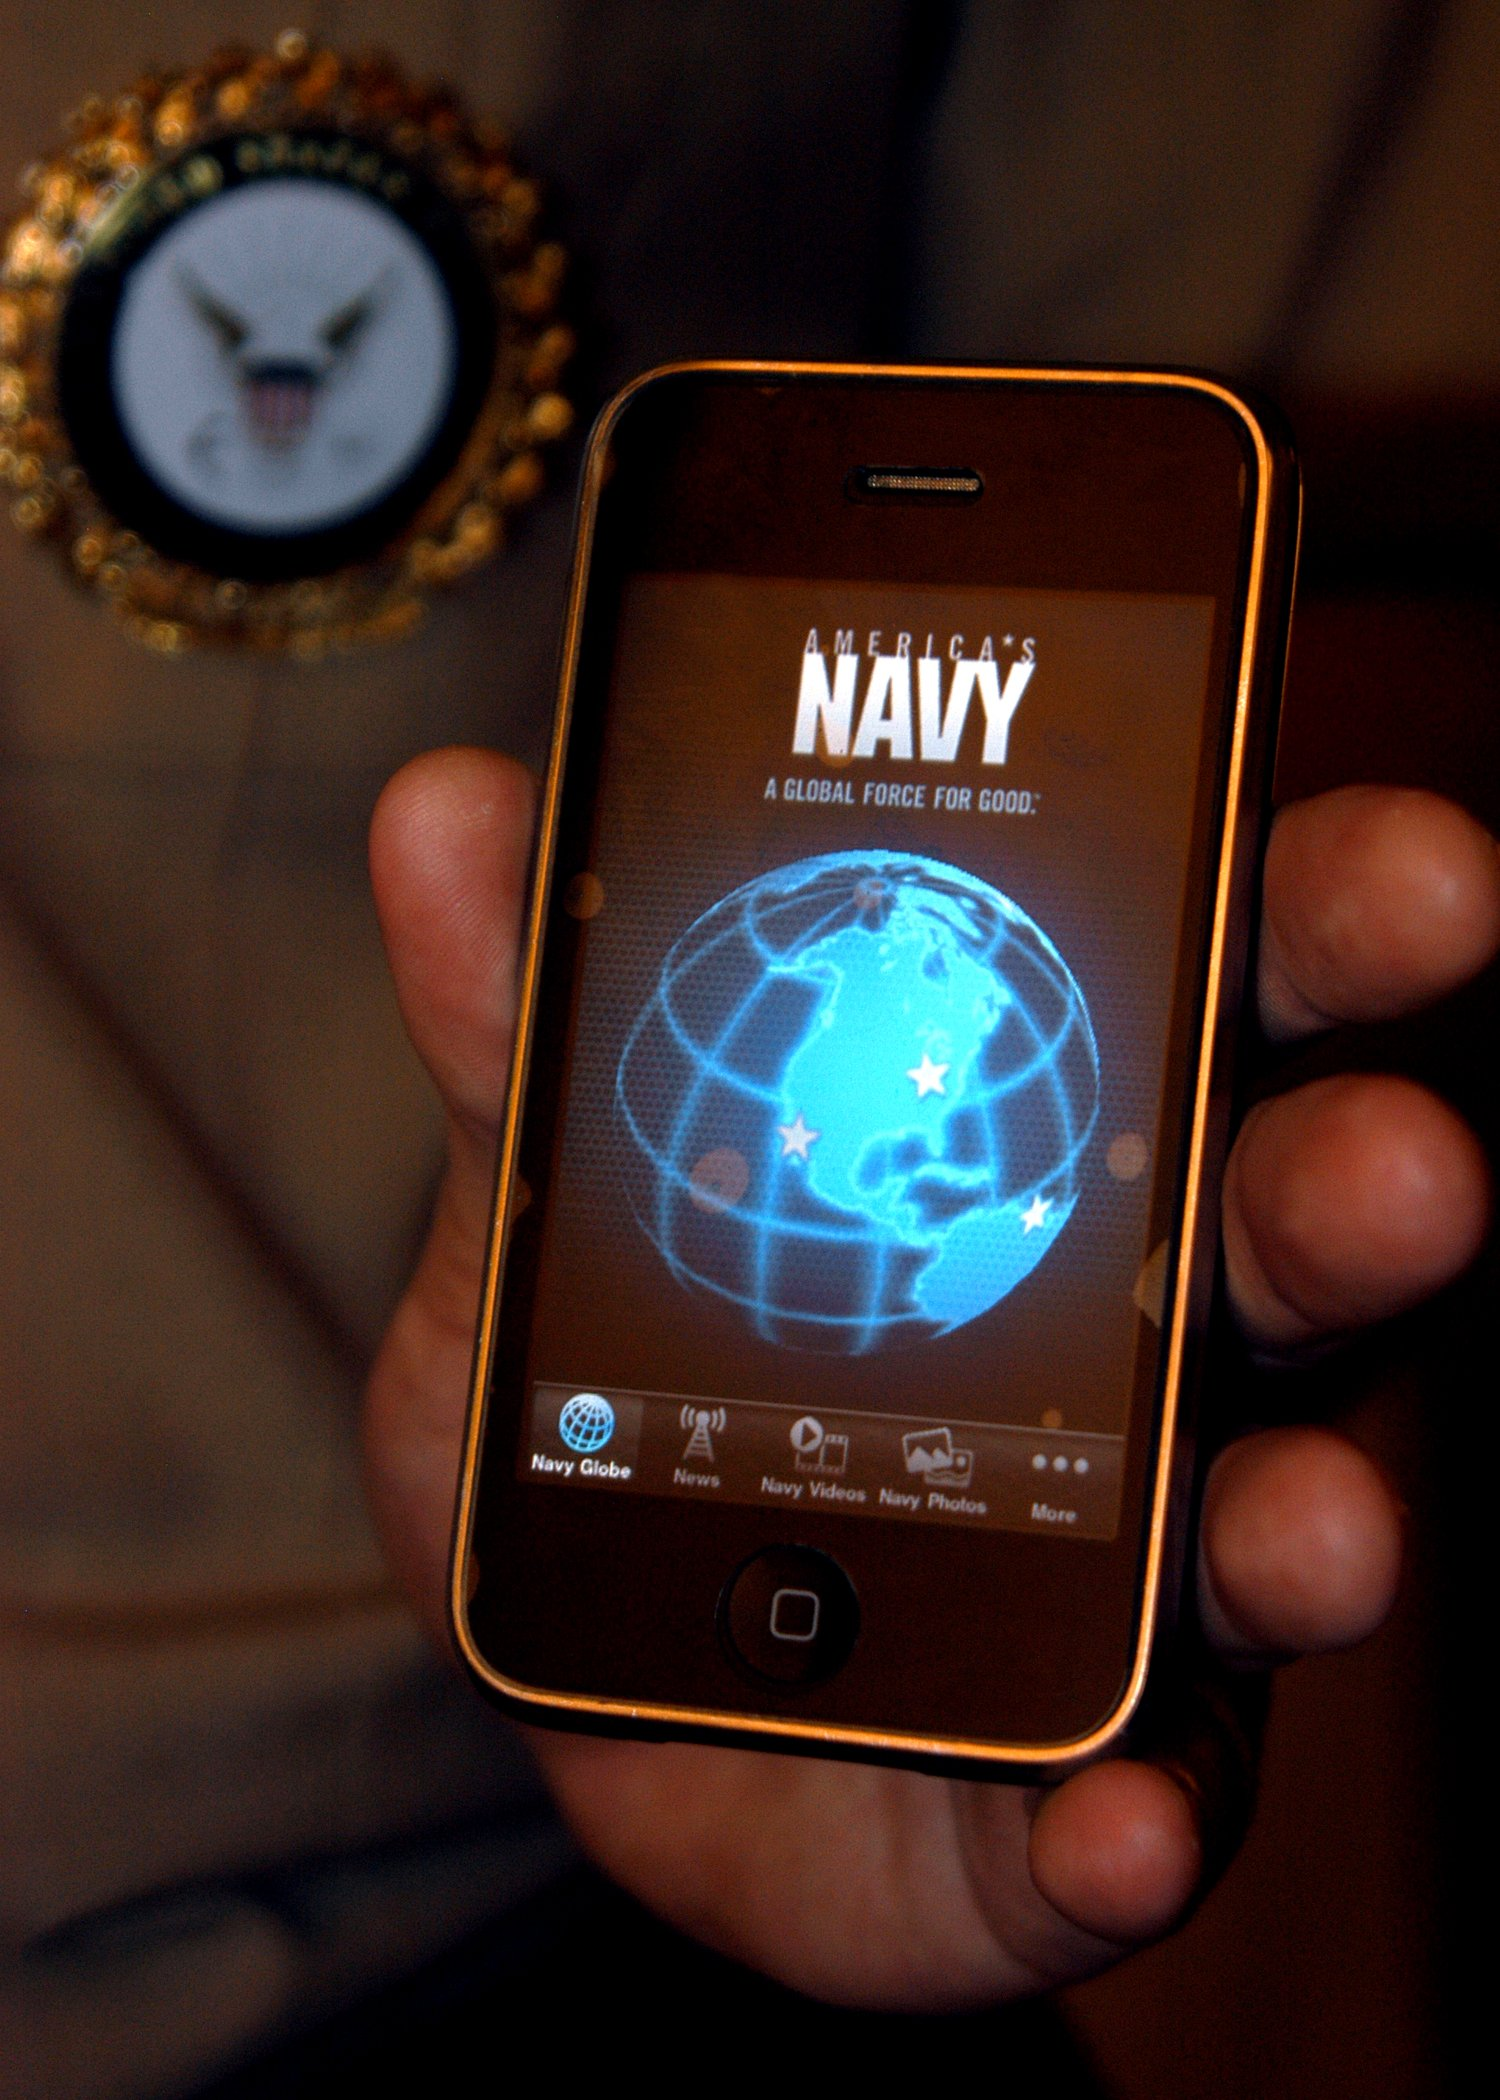 WEST: U S  Navy Ditching BlackBerry for iPhones, Androids - USNI News